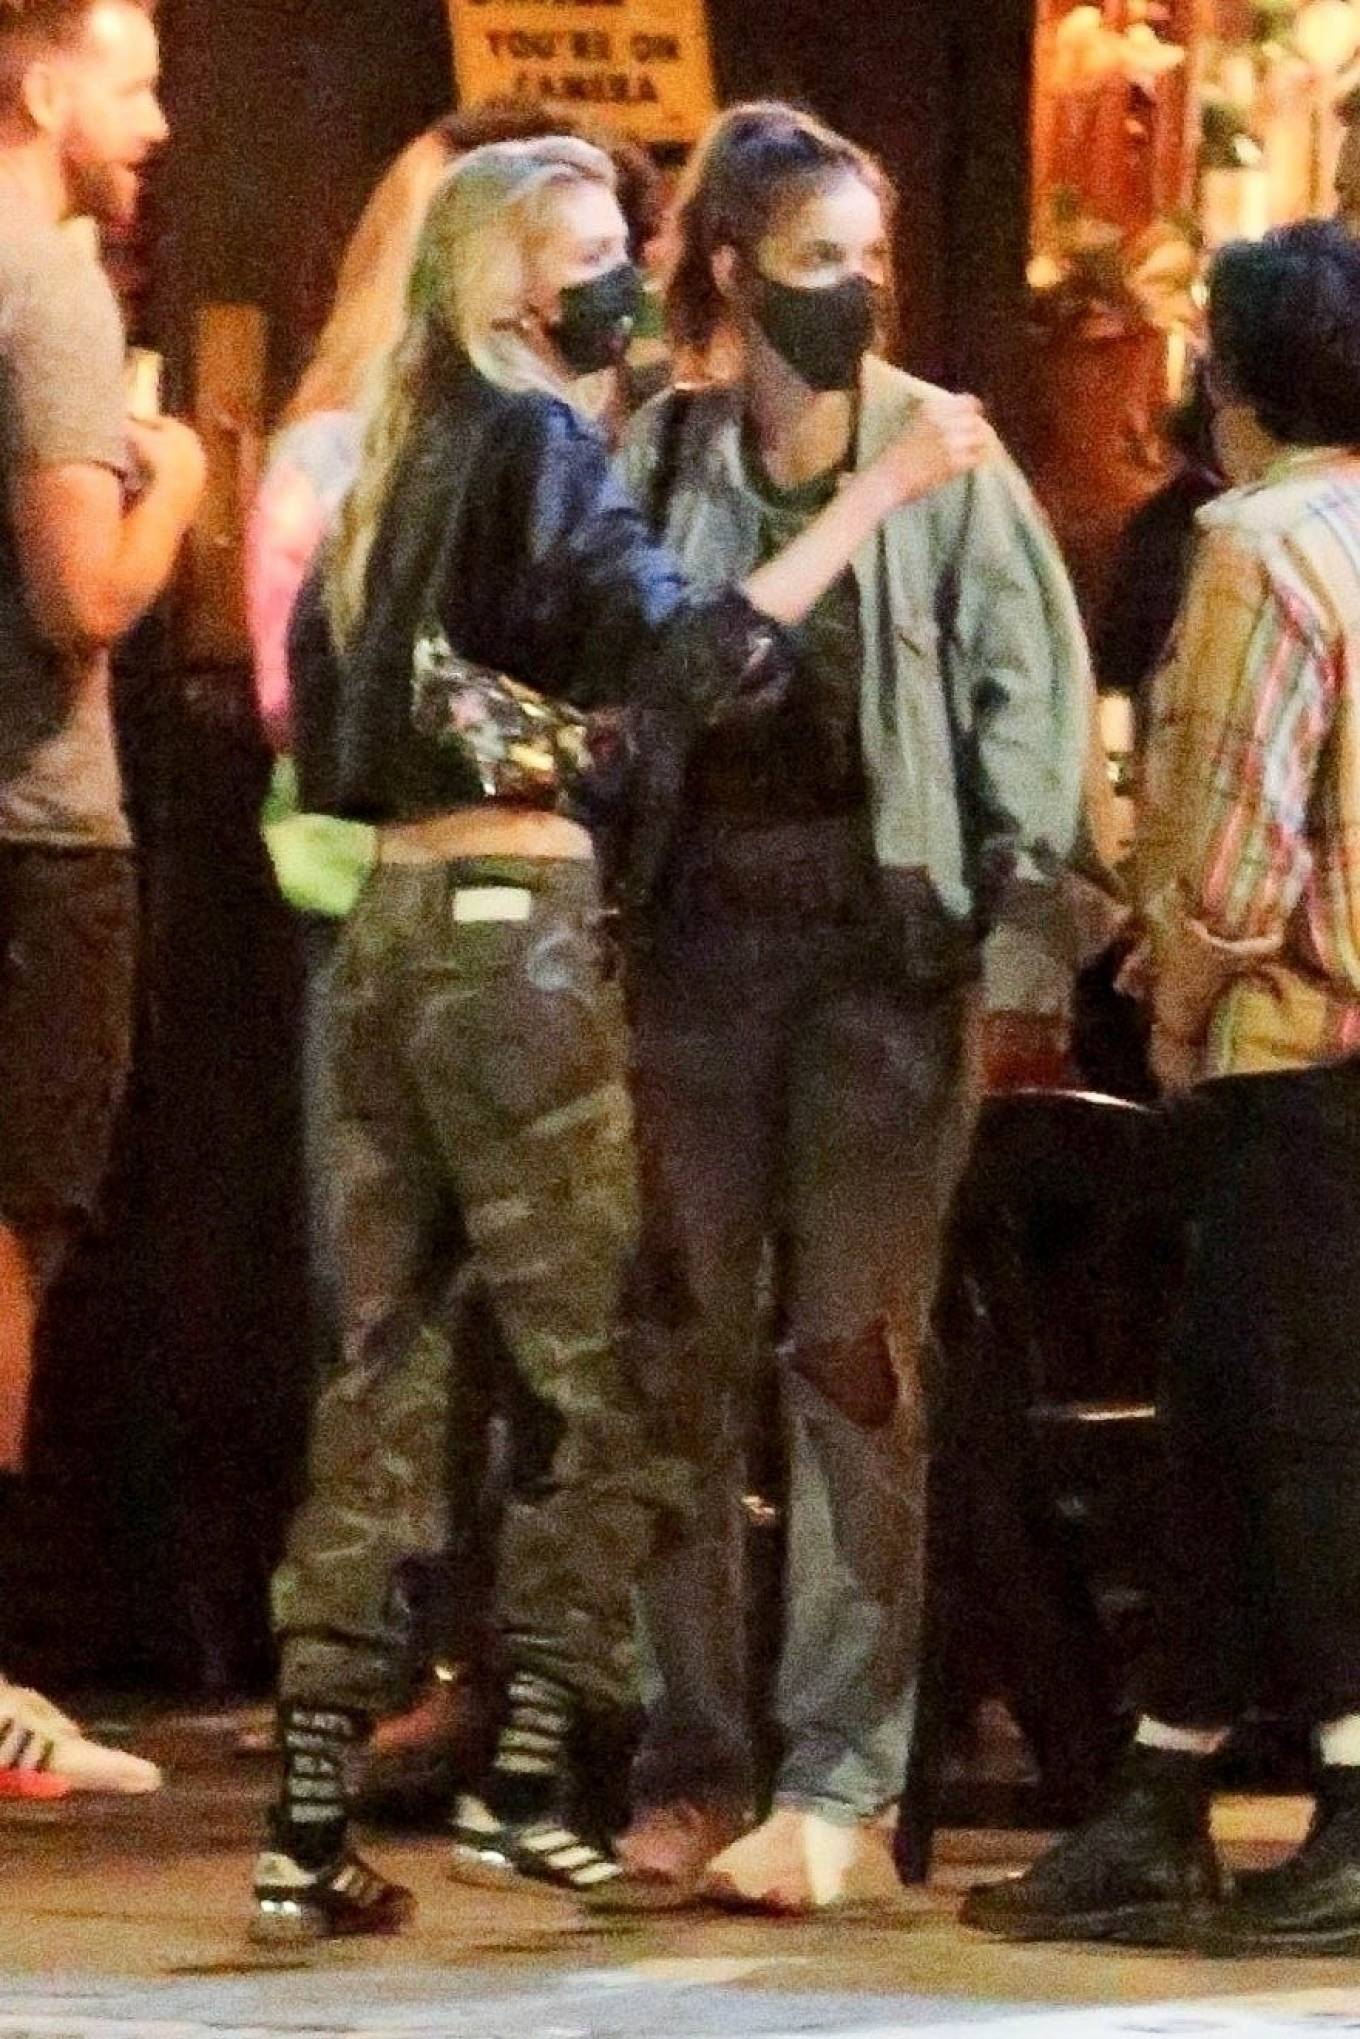 Barbara Palvin 2020 : Dylan Sprouse and Barbara Palvin with KJ Apa and Stella Maxwell – Night out in Silverlake -05